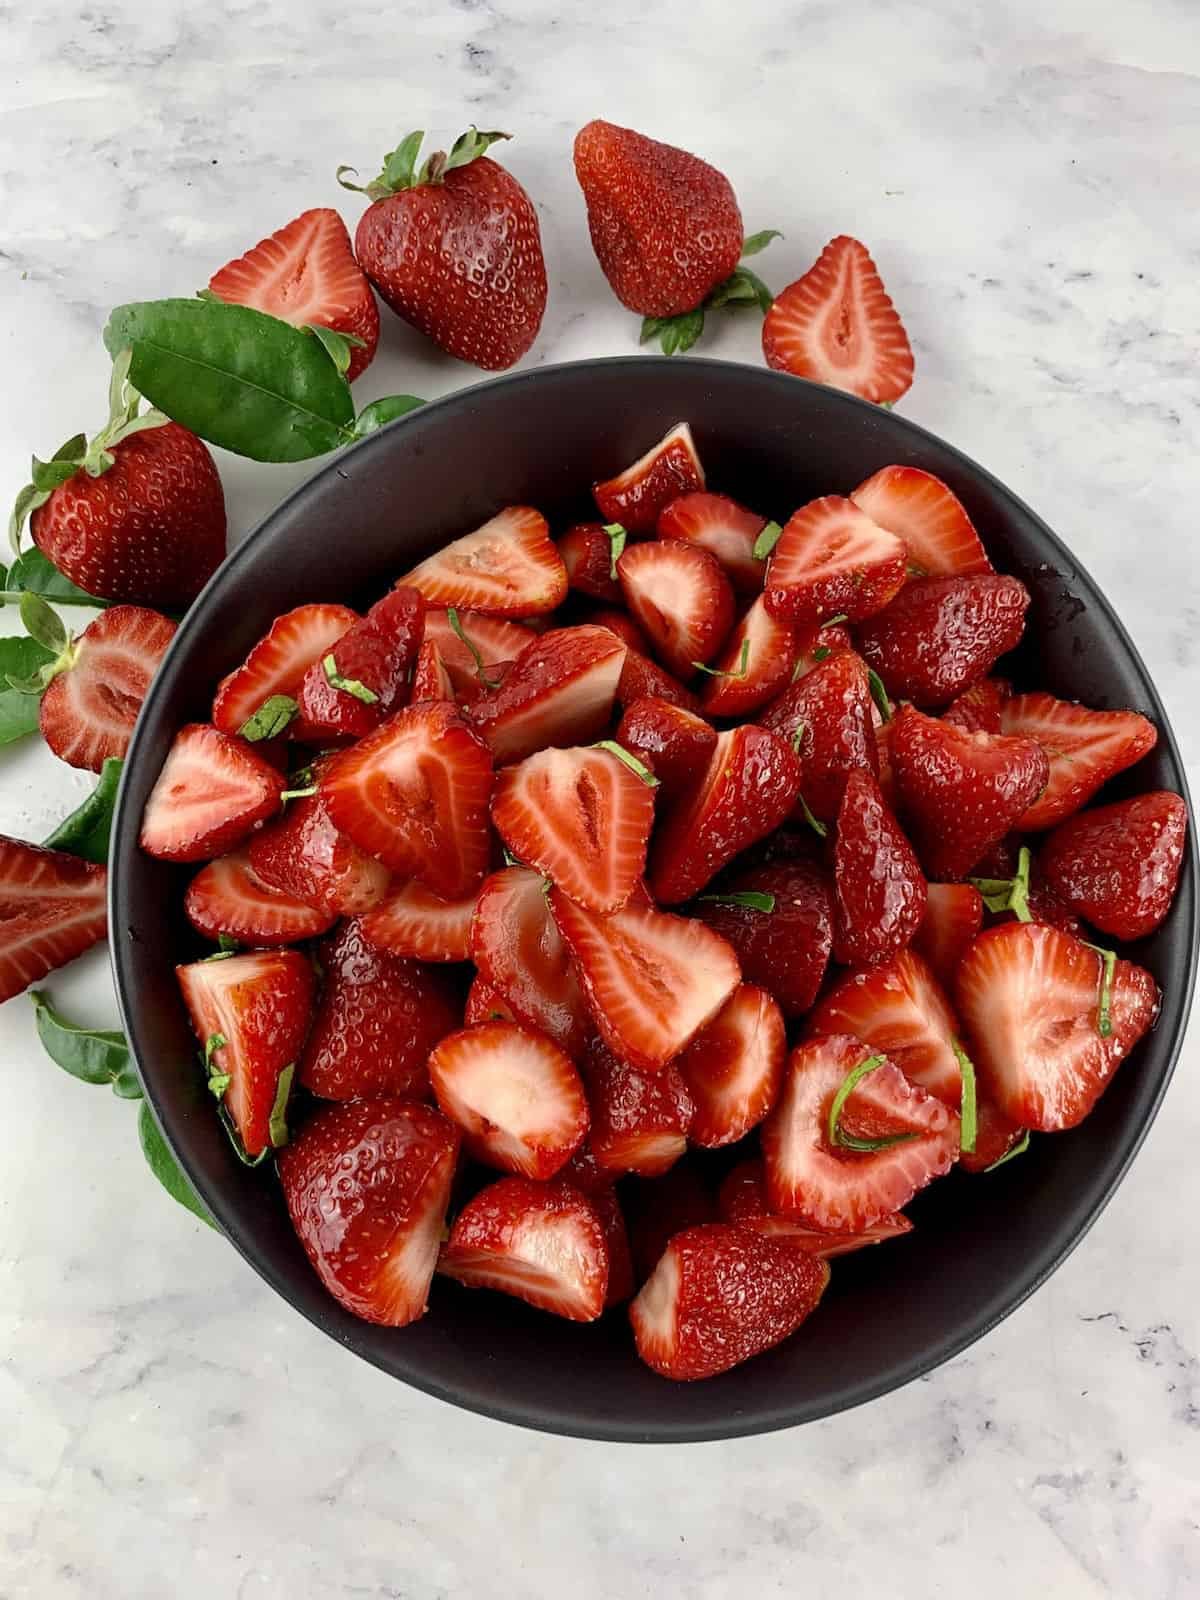 STRAWBERRIES AND LIME FRUIT SALAD IN A BLACK BOWL WITH STRAWBERRIES AND LIME LEAVES SCATTERED AROUND